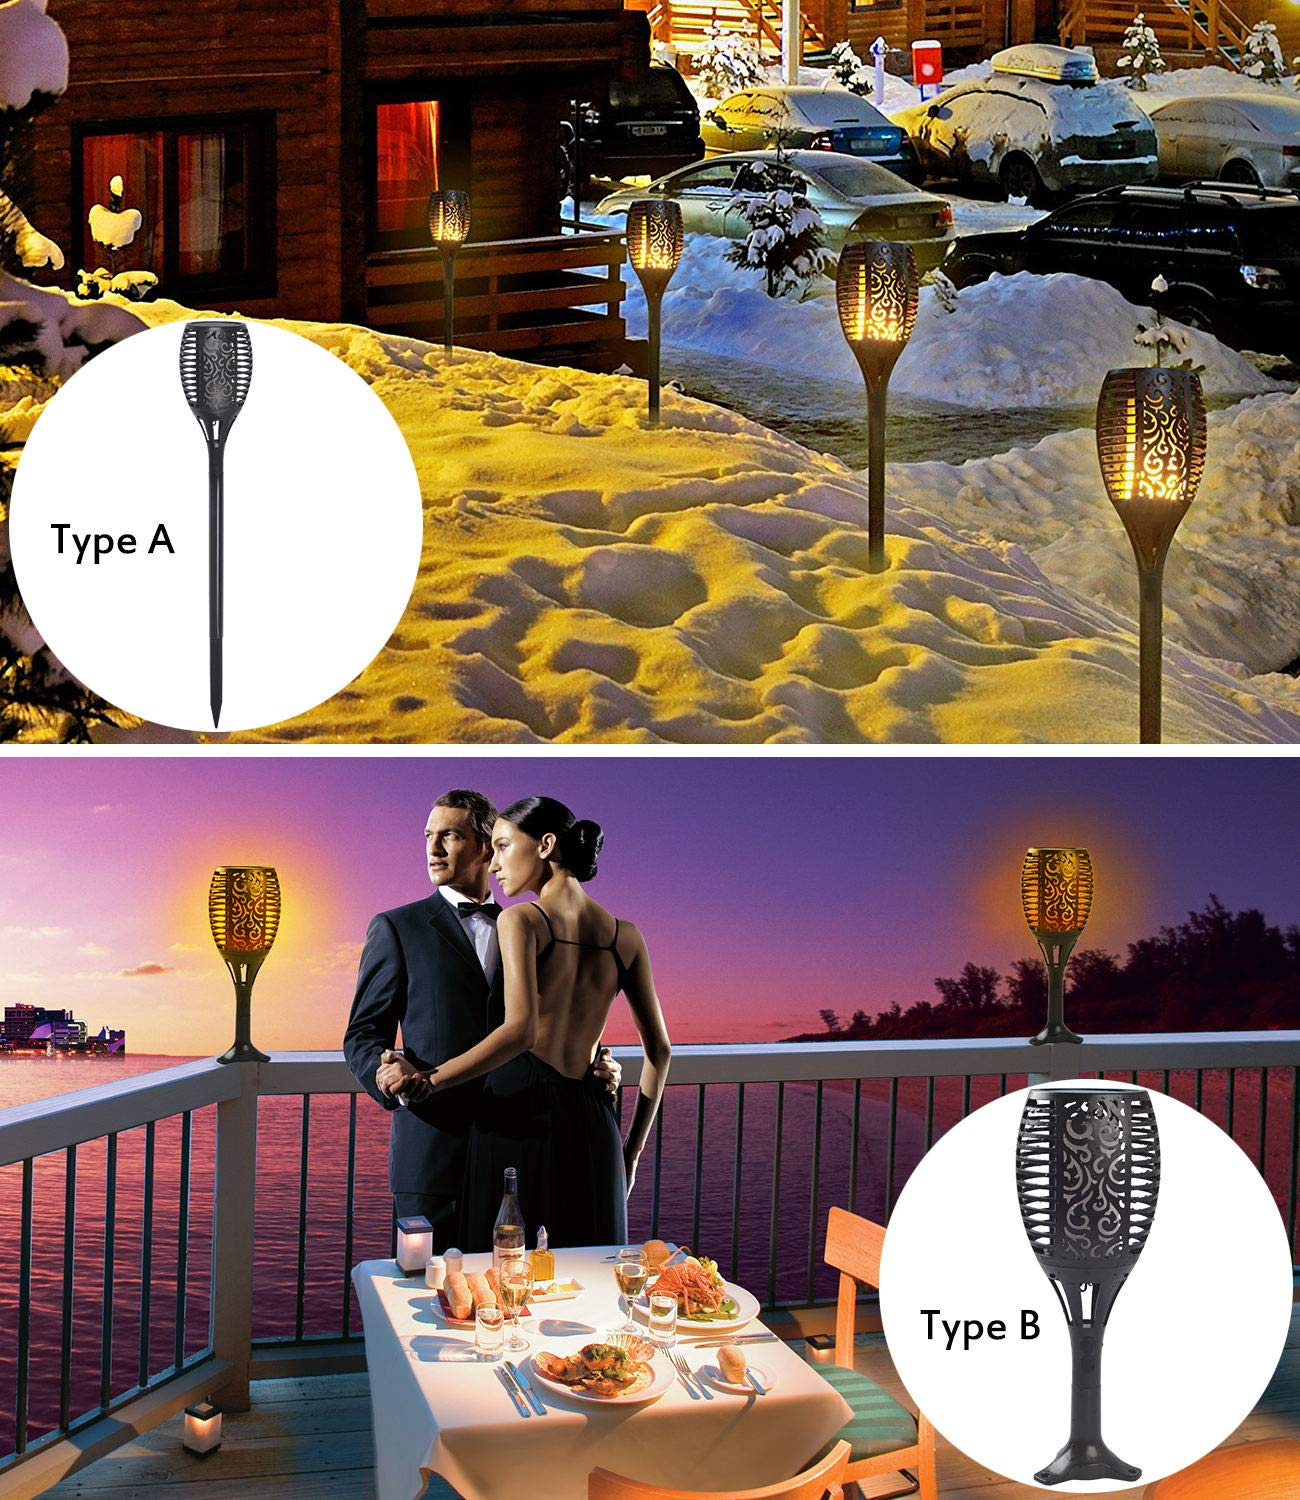 """Solar Torch Lights, Waterproof Flickering Flame Solar Torches Dancing Flames Landscape USB Charging Decoration Lighting Dusk to Dawn Outdoor Security Path Light for Garden Patio Yard Driveway 2 Pack - 🔥GORGEOUS DANCING FLAMES DESIGN: A safe alternative to the real """"flames"""" - LEDs in the light cast a safe, soft, mood-enhancing glow. Please note the actual height of the item is 28.4 inches. 🔥TWO CHARGING MODES:Different from general solar torch light, it could powred by Solar energy and USB Charging,you can place it anywhereonce powered, no matter in sunny day,in winter, rainy day or cloudy day. 🔥THREE EASY INSTALLATION: Pathway, Floor, Table available. No wiring required, simply install it anywhere you like and enjoy the warm torch light. - patio, outdoor-lights, outdoor-decor - 81FXK3q9GUL -"""